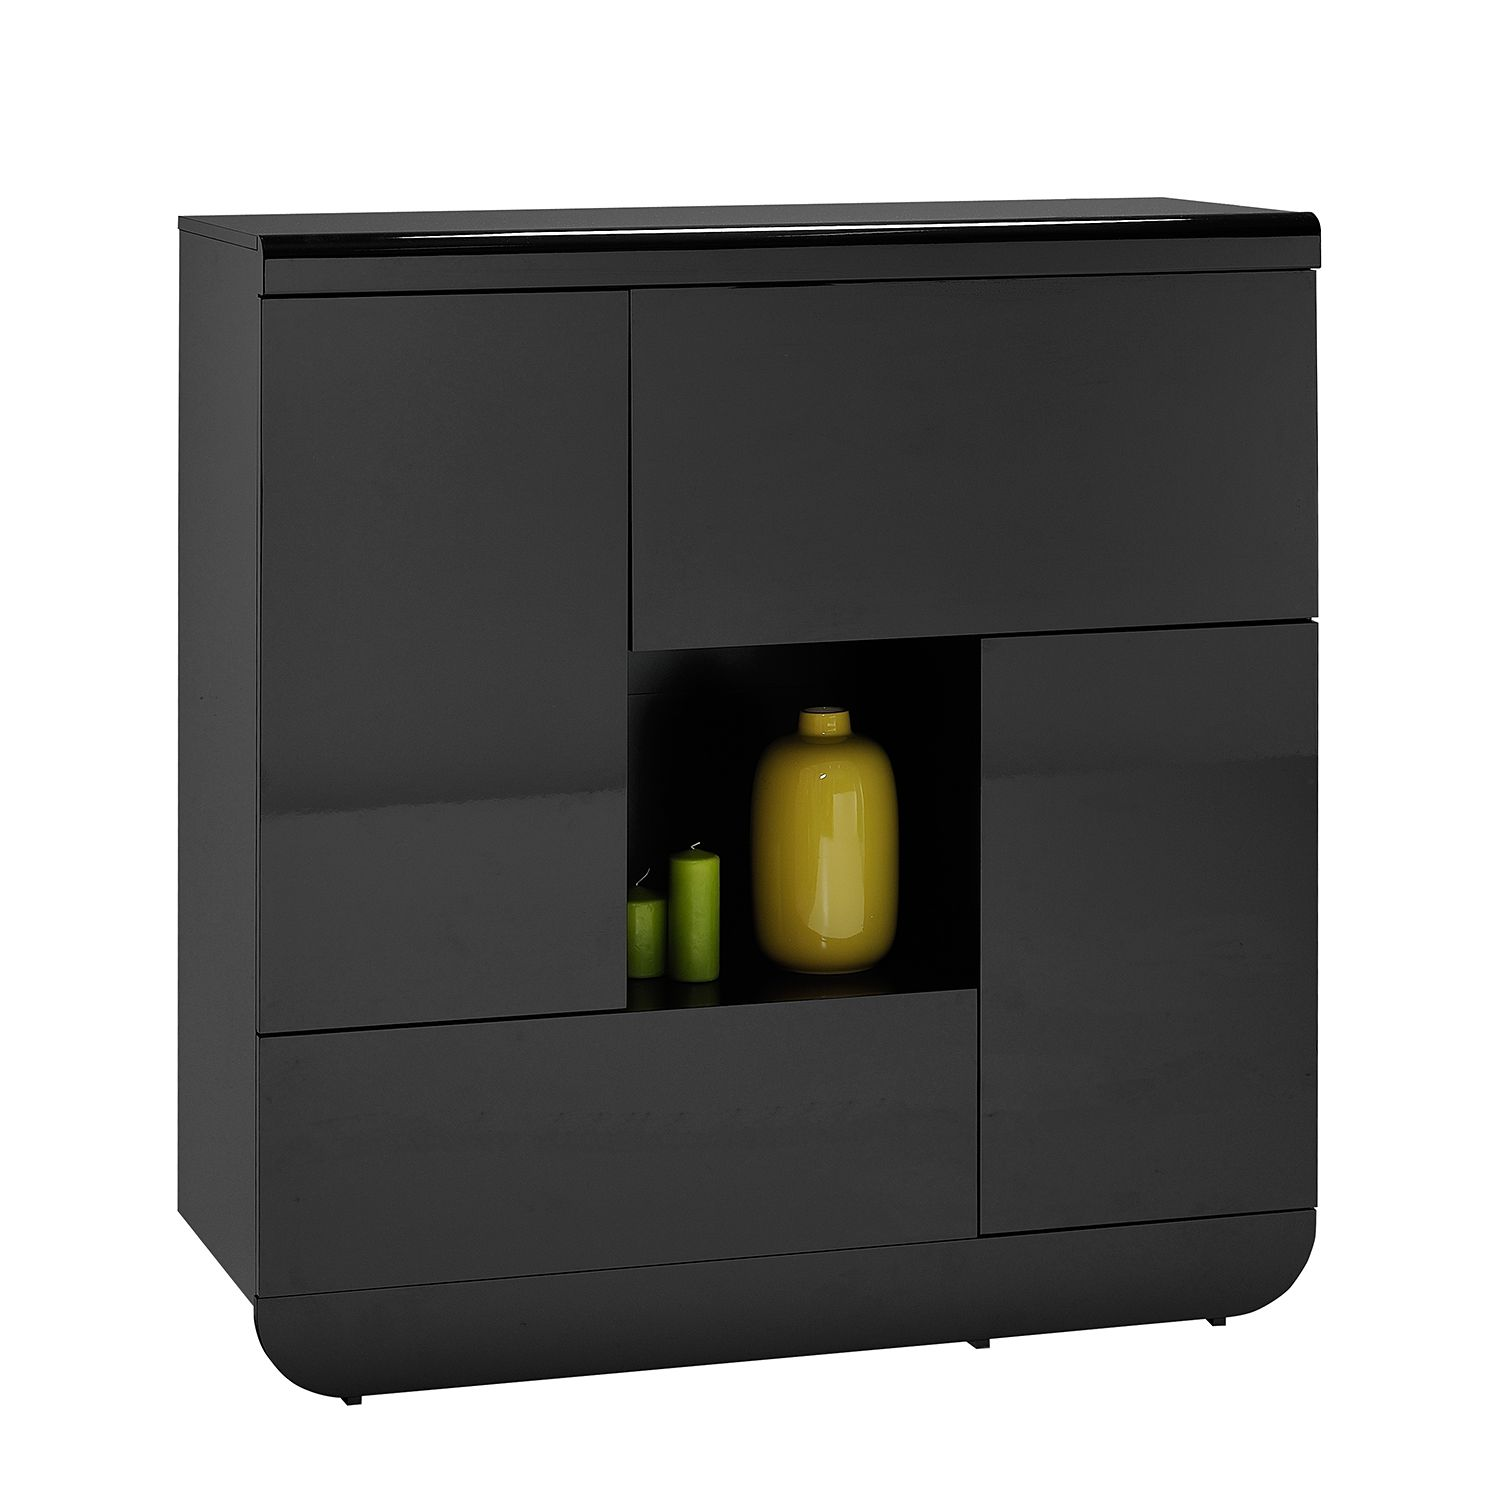 kommode schwarz g nstig neuesten design kollektionen f r die familien. Black Bedroom Furniture Sets. Home Design Ideas